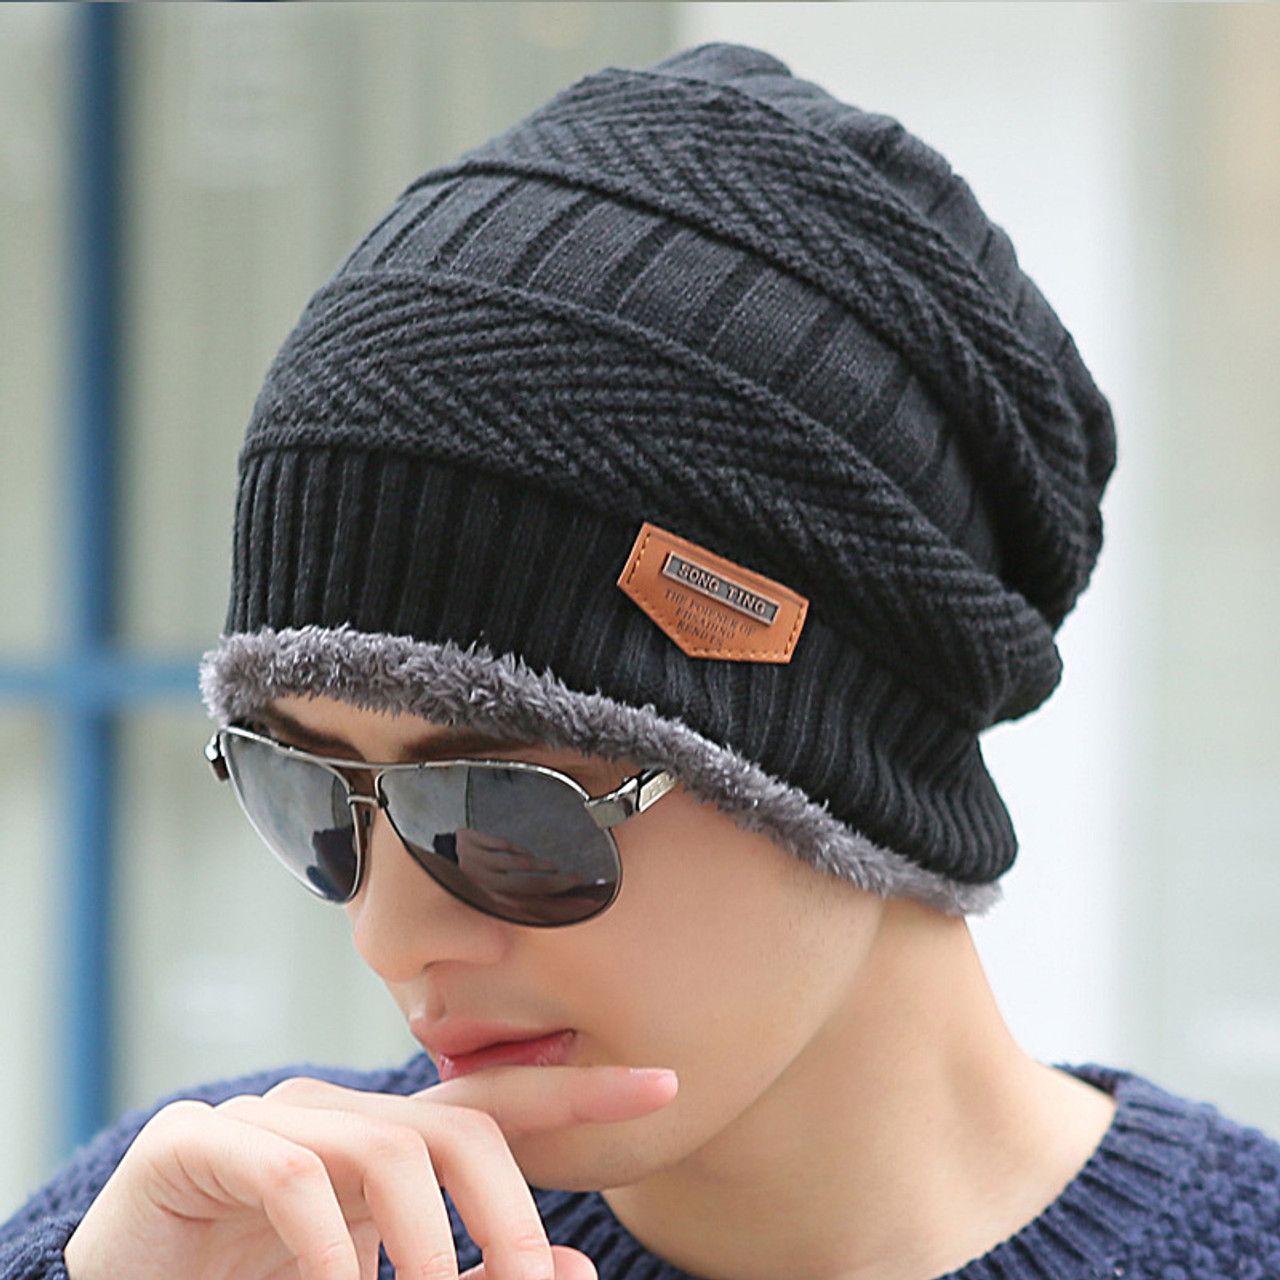 ... Boys Men Winter Hat Knit Scarf Cap Winter Hats for Men Caps Warm Fur  Skullies Beanie ... 8326e6048